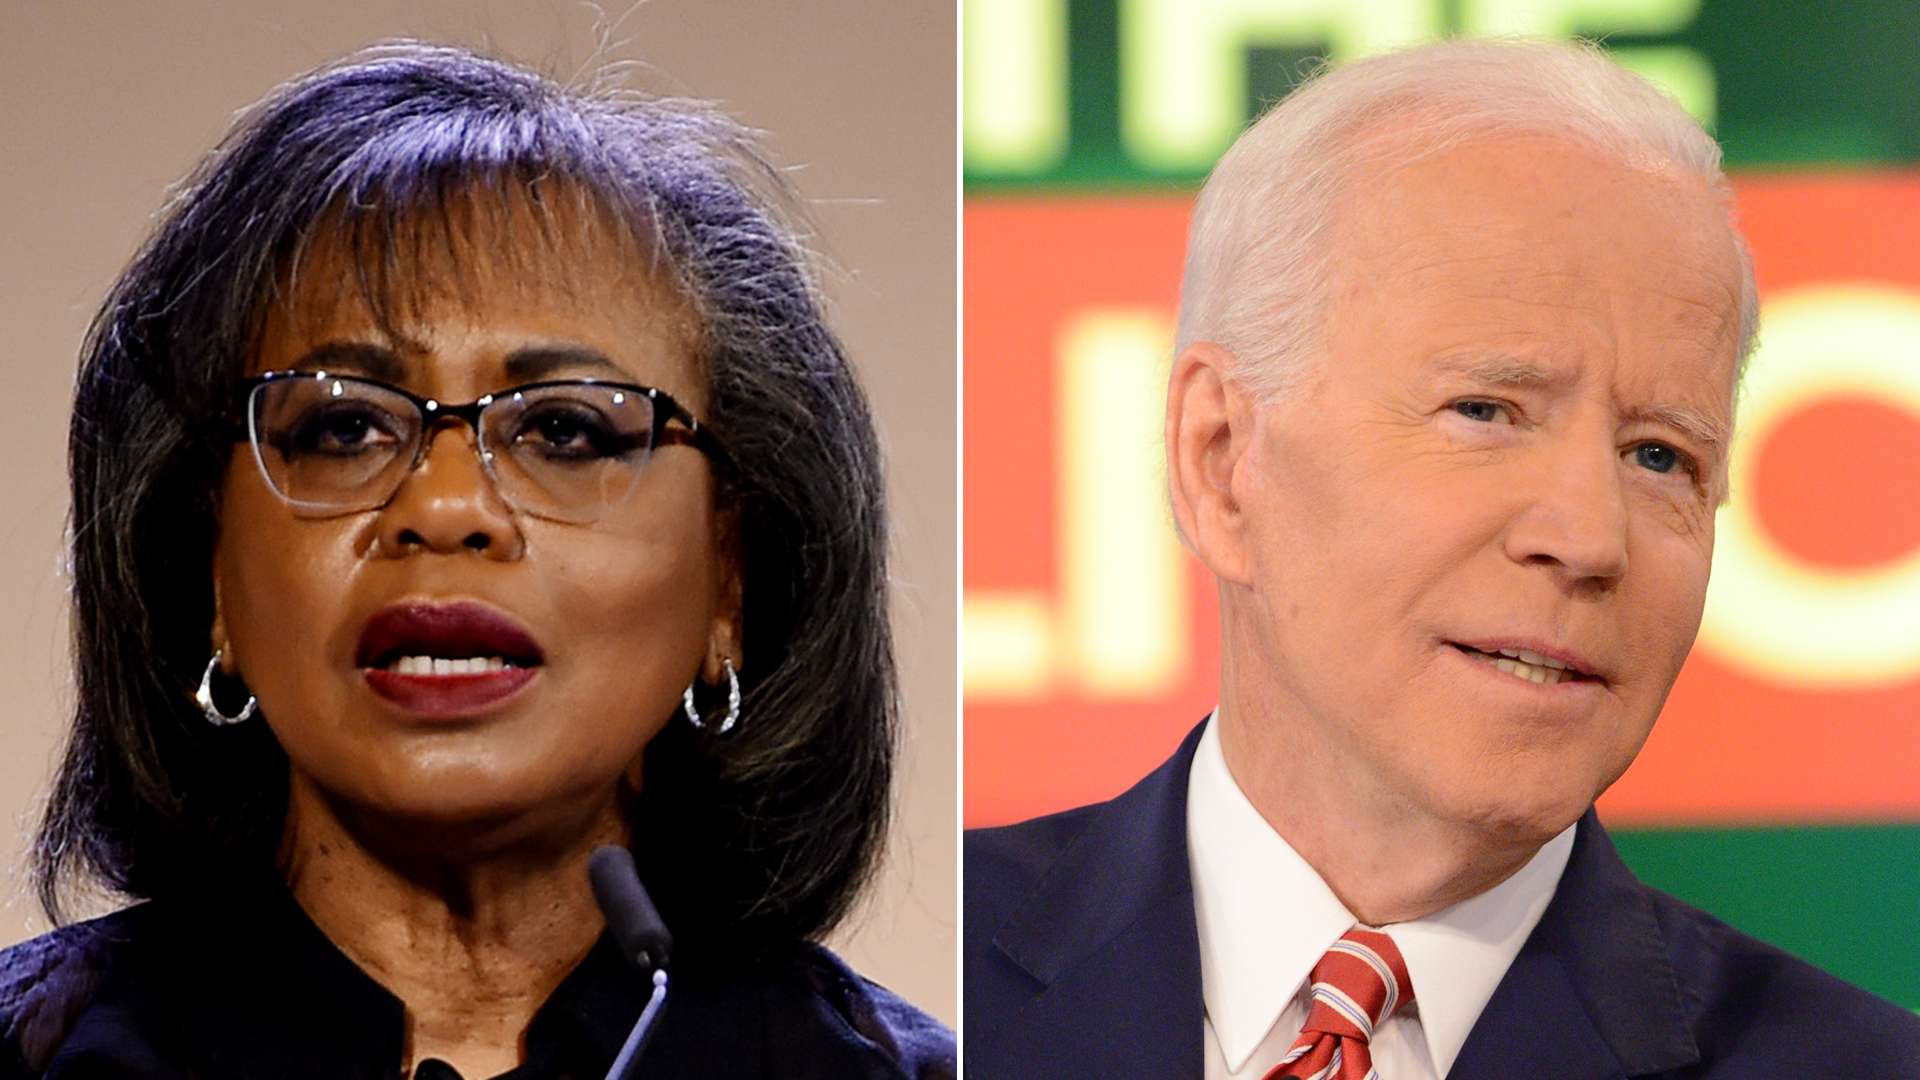 """Anita Hill, left, speaks at the DVF Awards at Brooklyn Museum on April 11, 2019. Joe Biden, right, appears on ABC's """"The View"""" on April 26, 2019. (Credit: Getty Images)"""